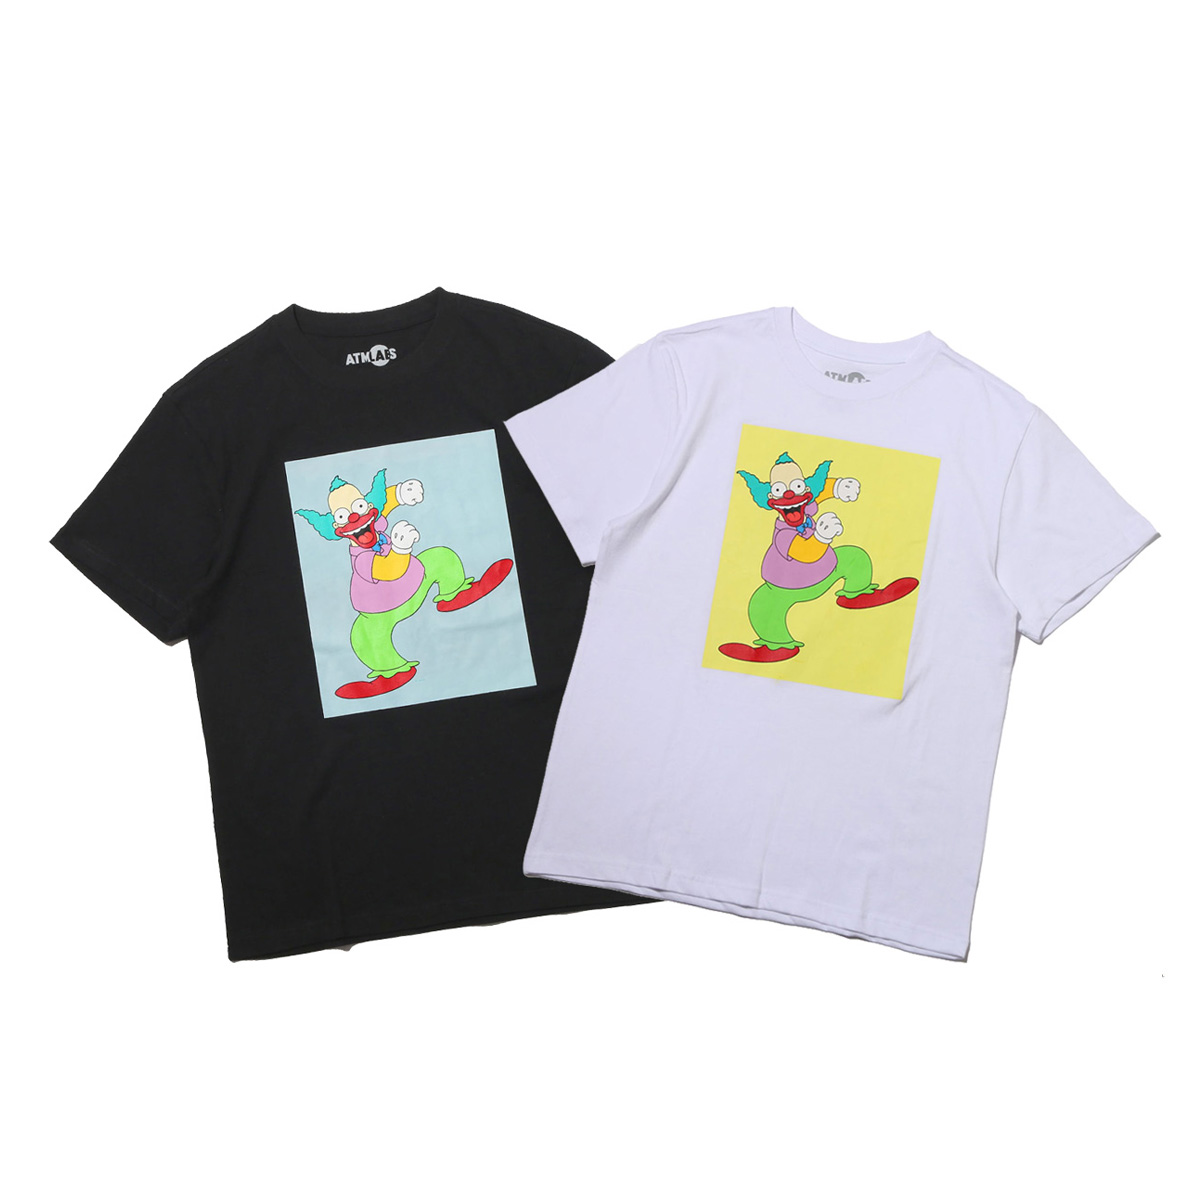 THE SIMPSONS x ATMOS LAB KRUSTY TEE